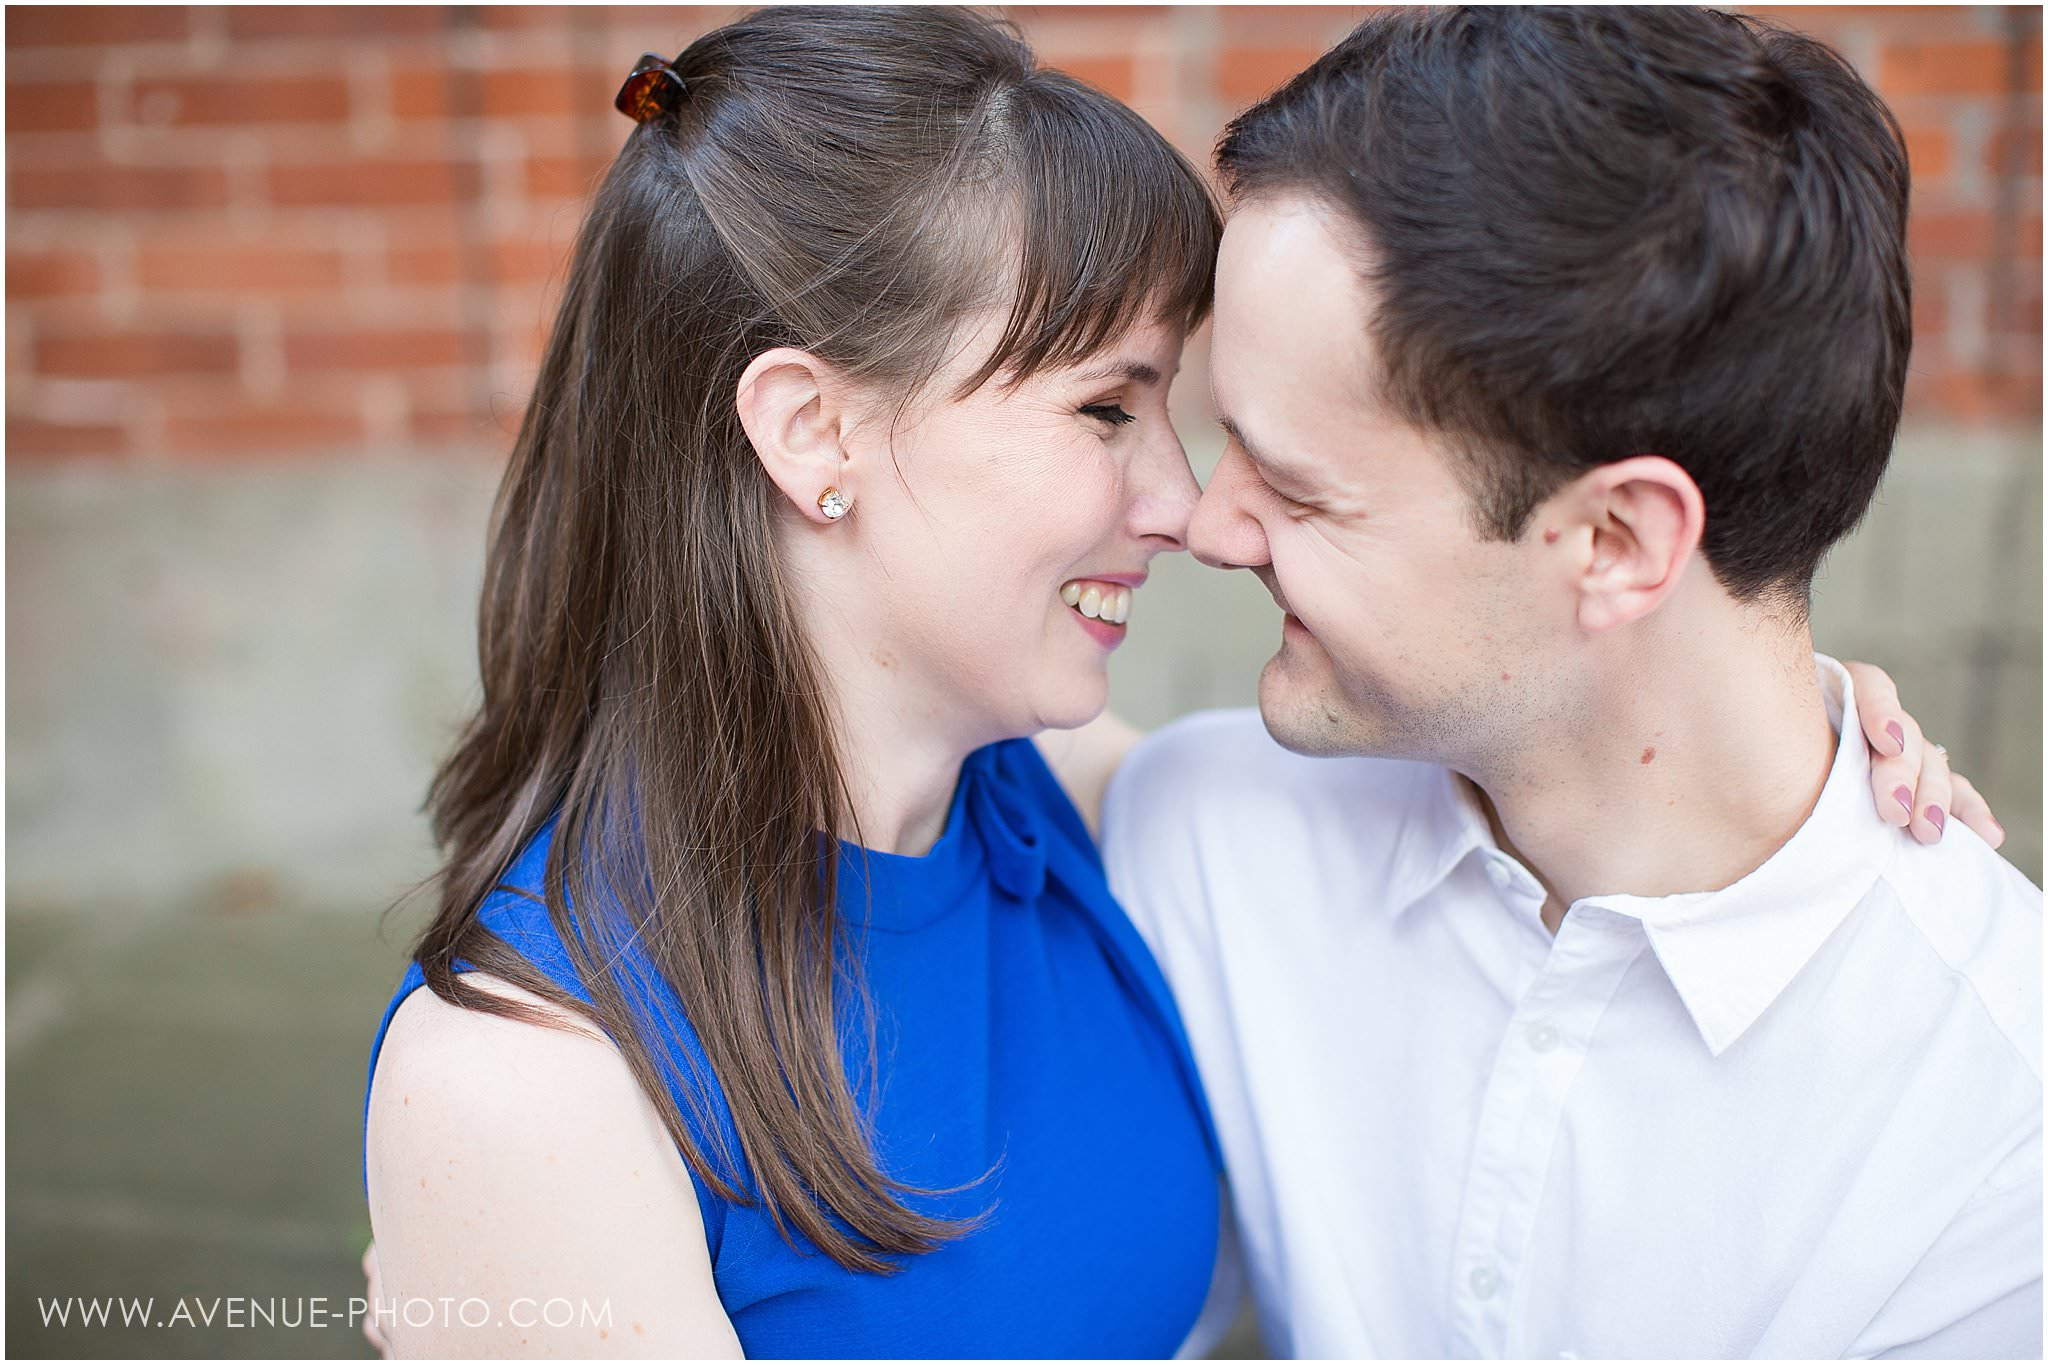 Burlington Engagement Photography, Village Square Burlington Engagement Photos, Burlington Waterfront Engagement photos, Burlington Wedding Photographer, Avenue Photo